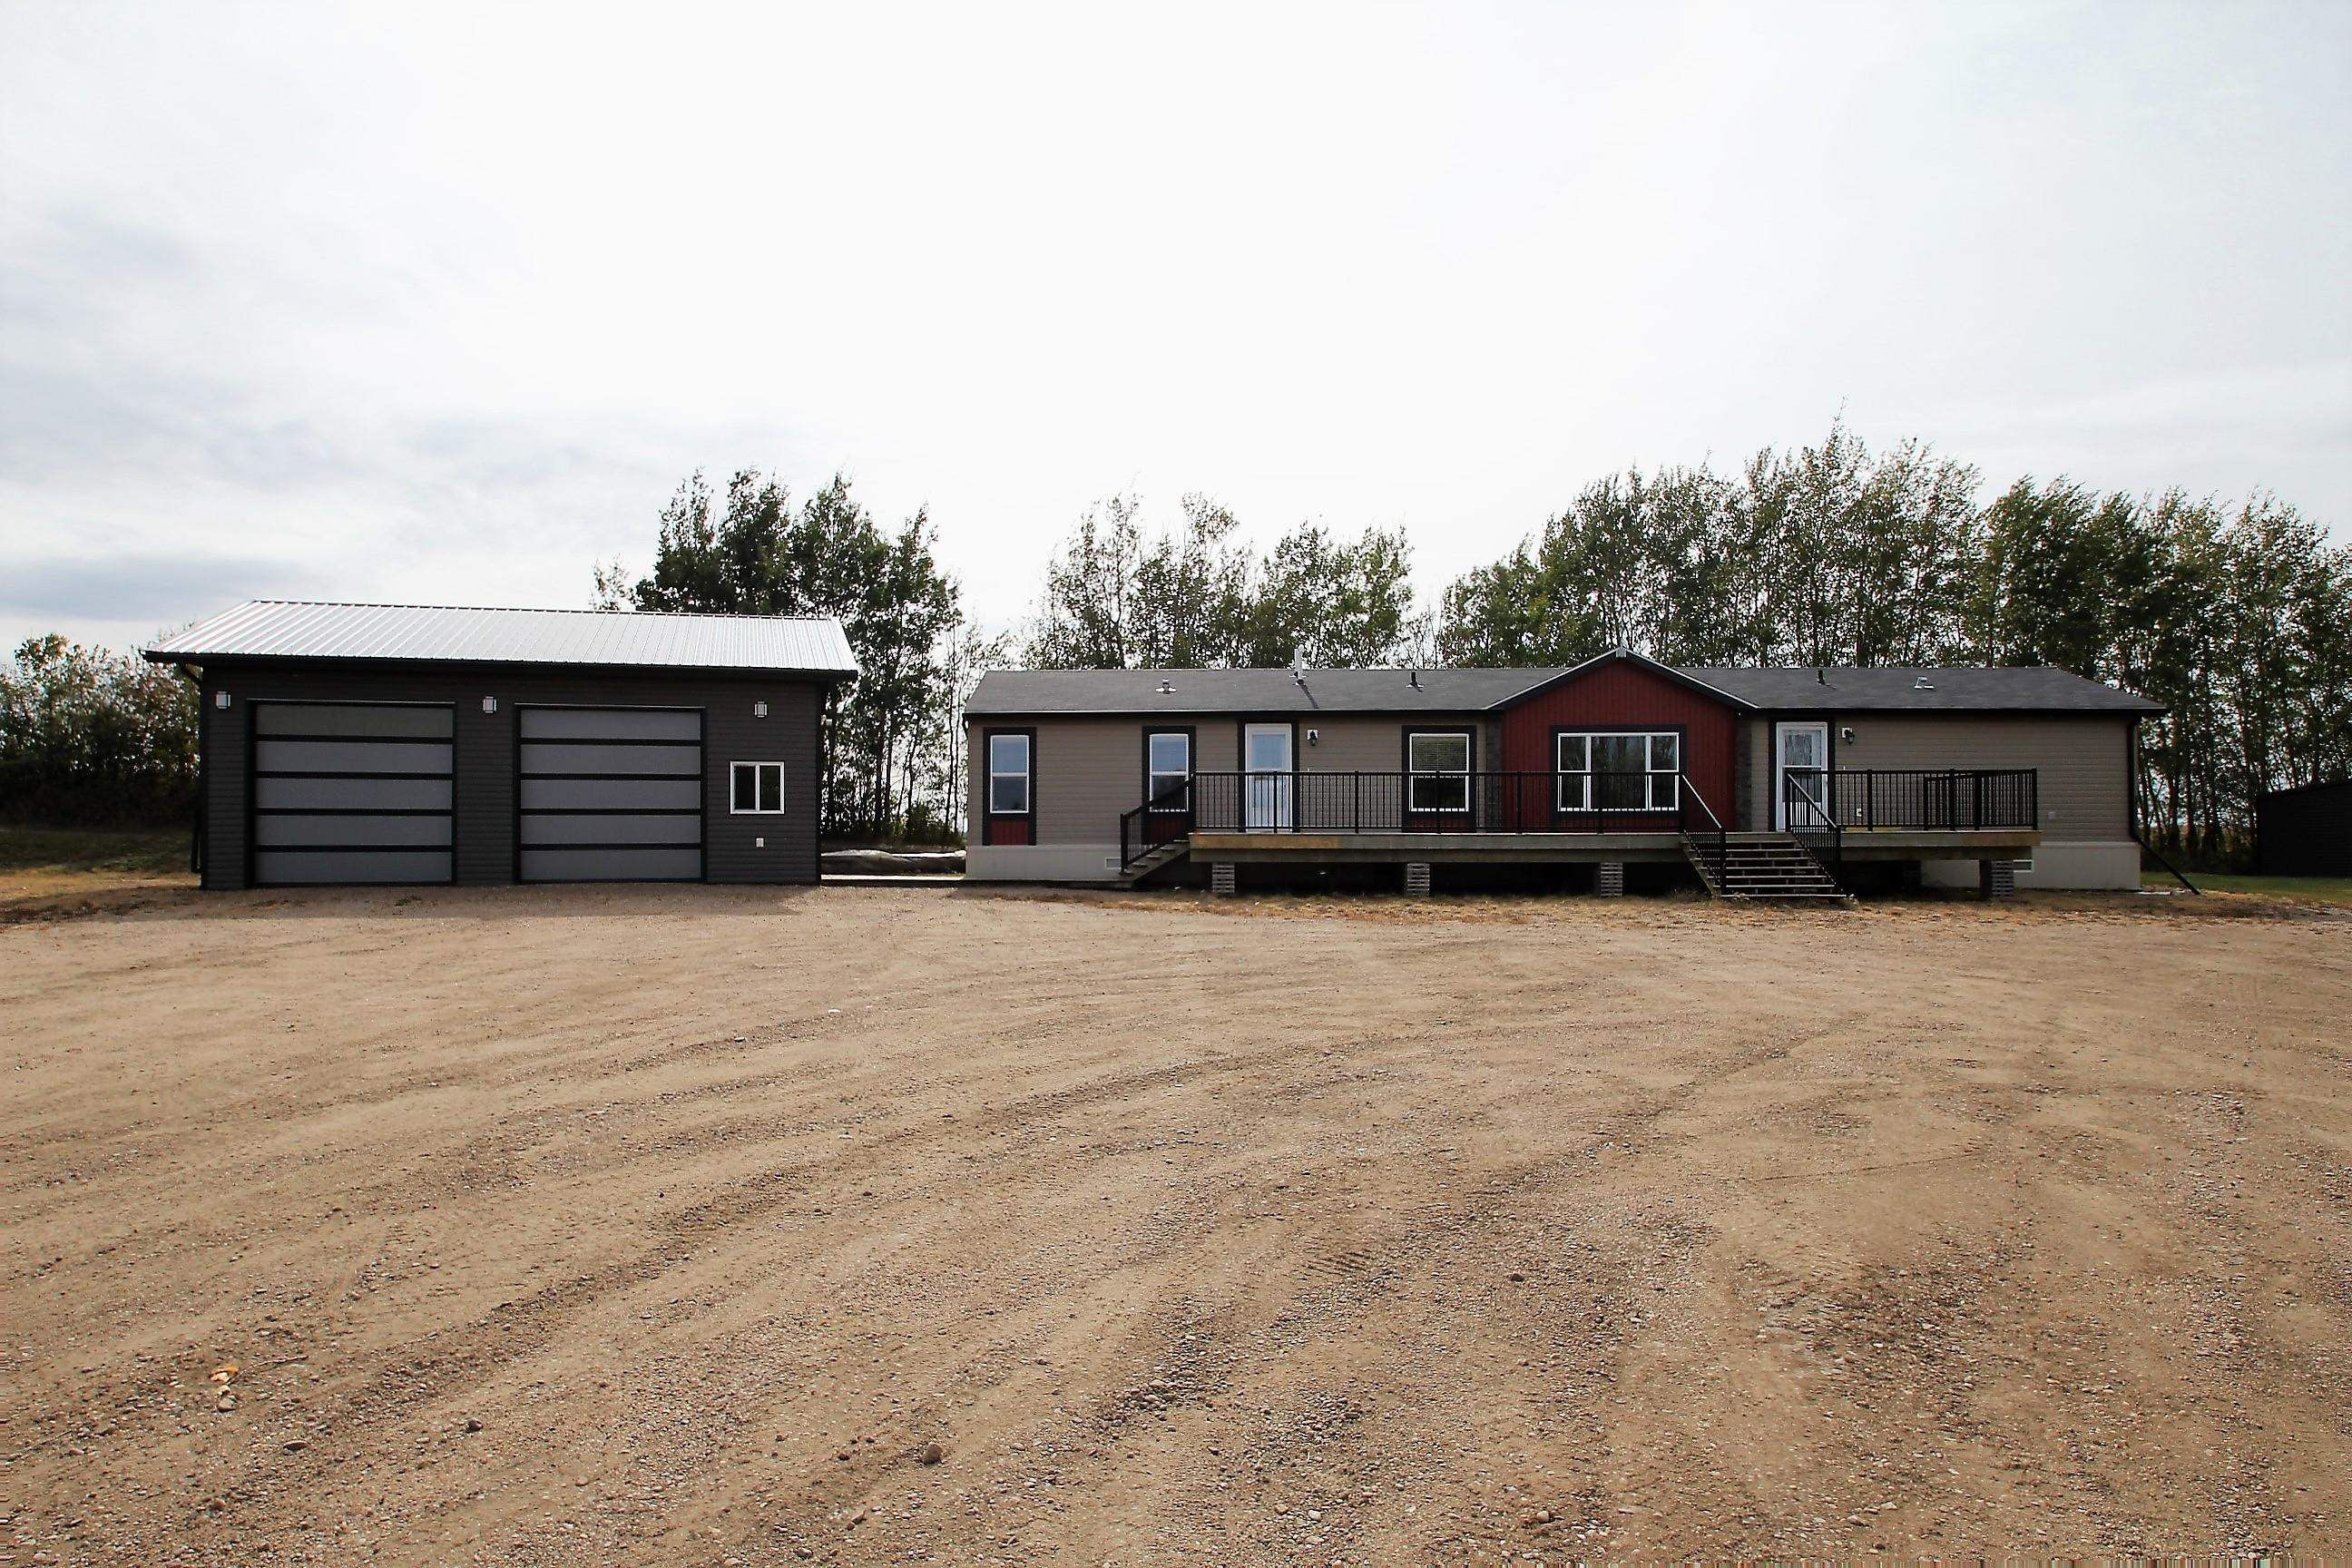 Main Photo: 58018 Rg Rd 100: Rural St. Paul County Manufactured Home for sale : MLS®# E4263765